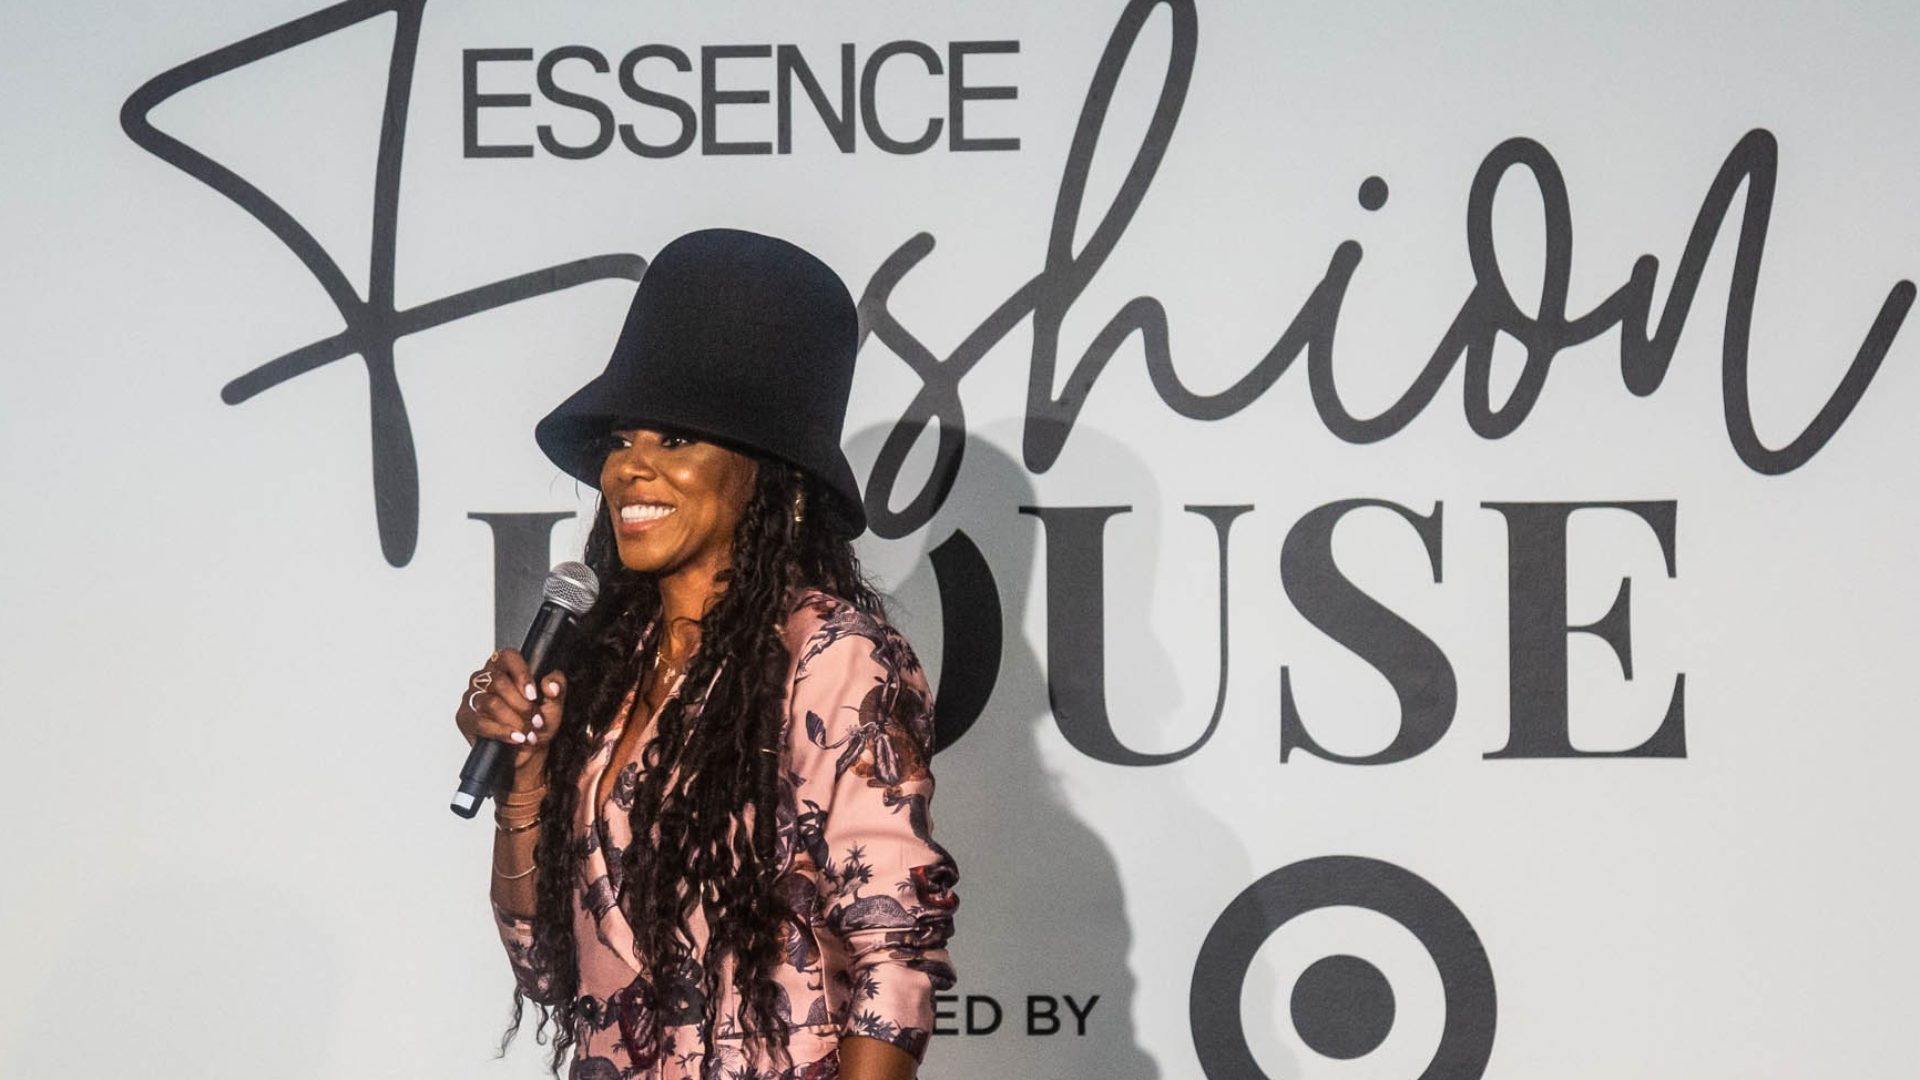 ESSENCE Fashion House: June Ambrose On The Art Of Unapologetic Style